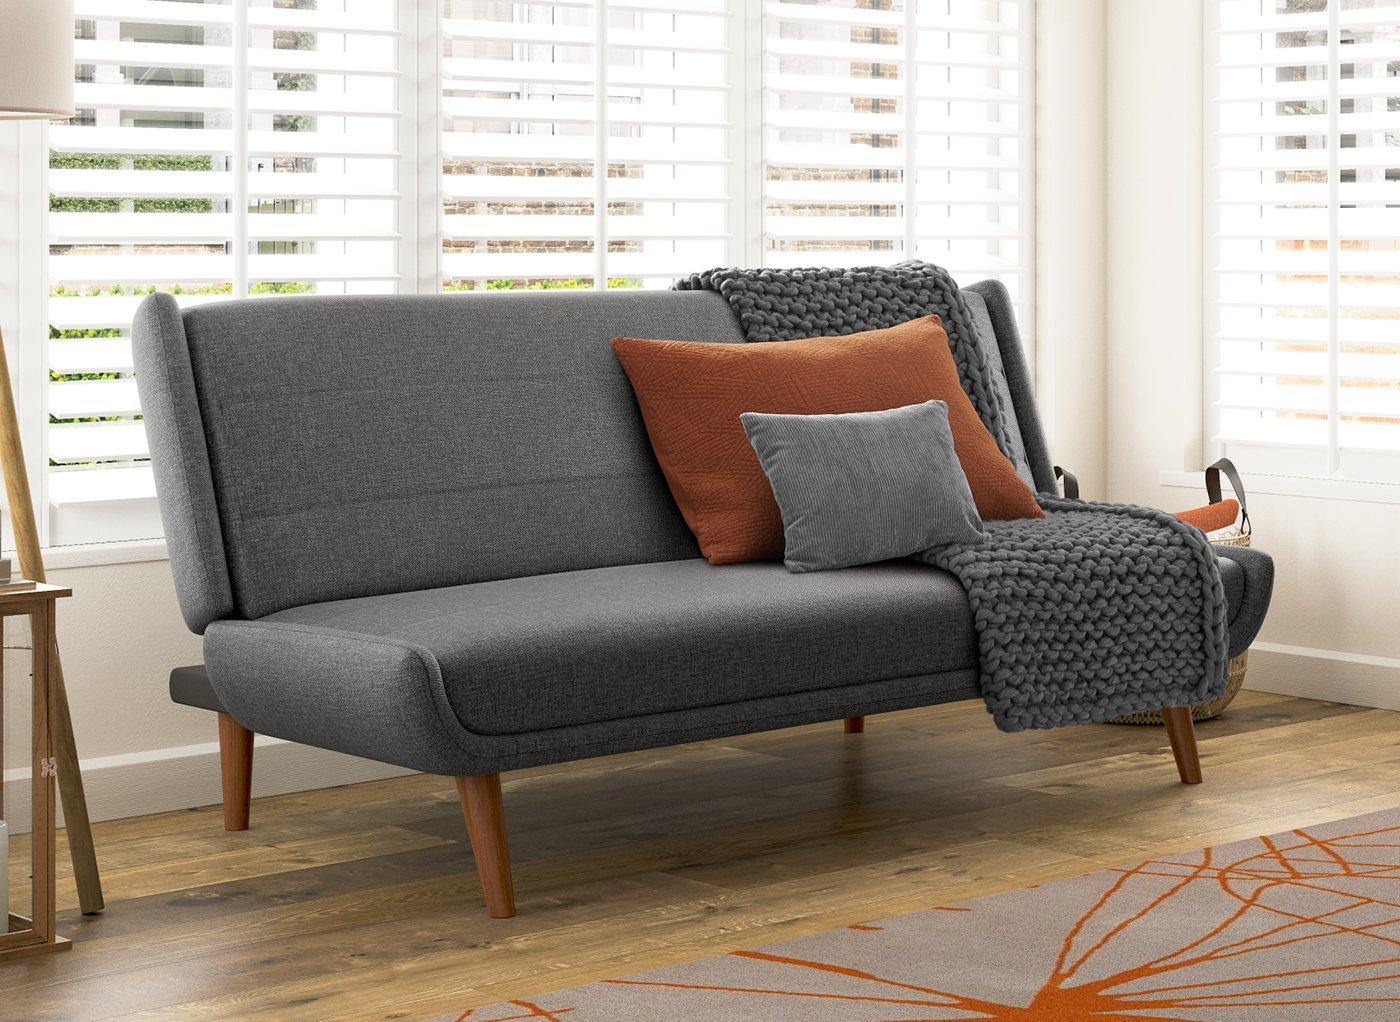 ellery-3-seater-clic-clac-sofa-bed